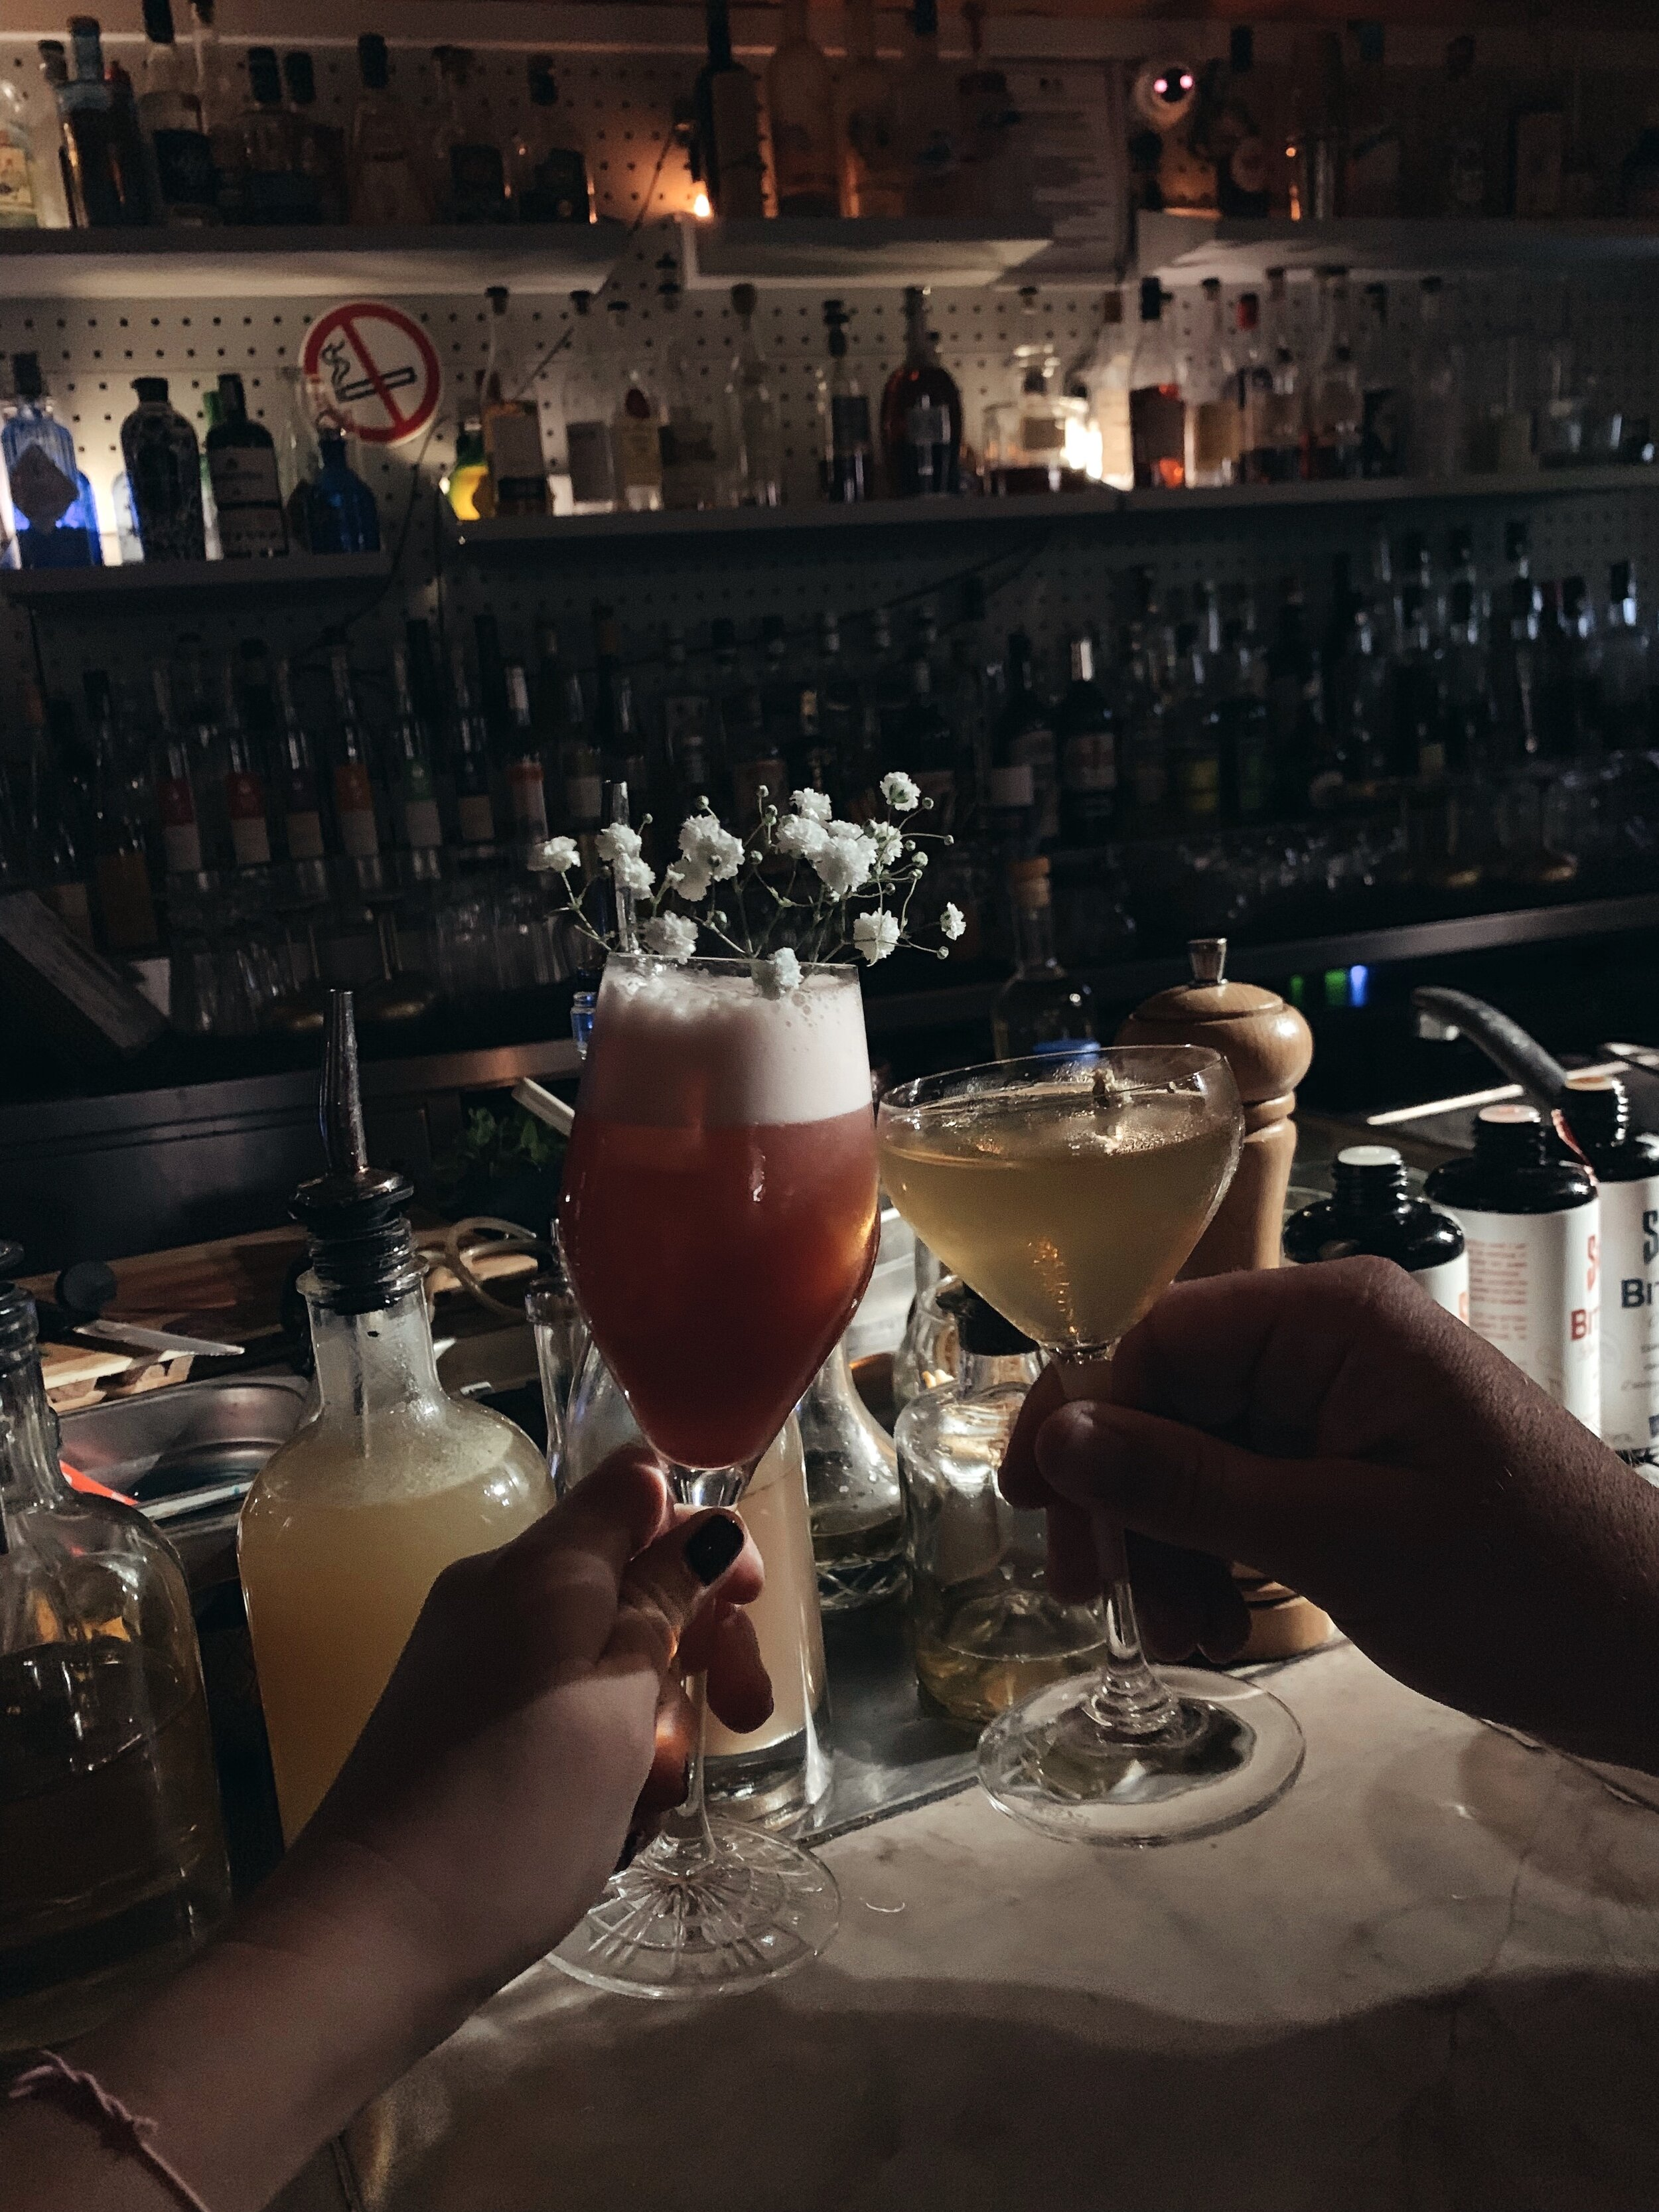 Cheers to Le Syndicat